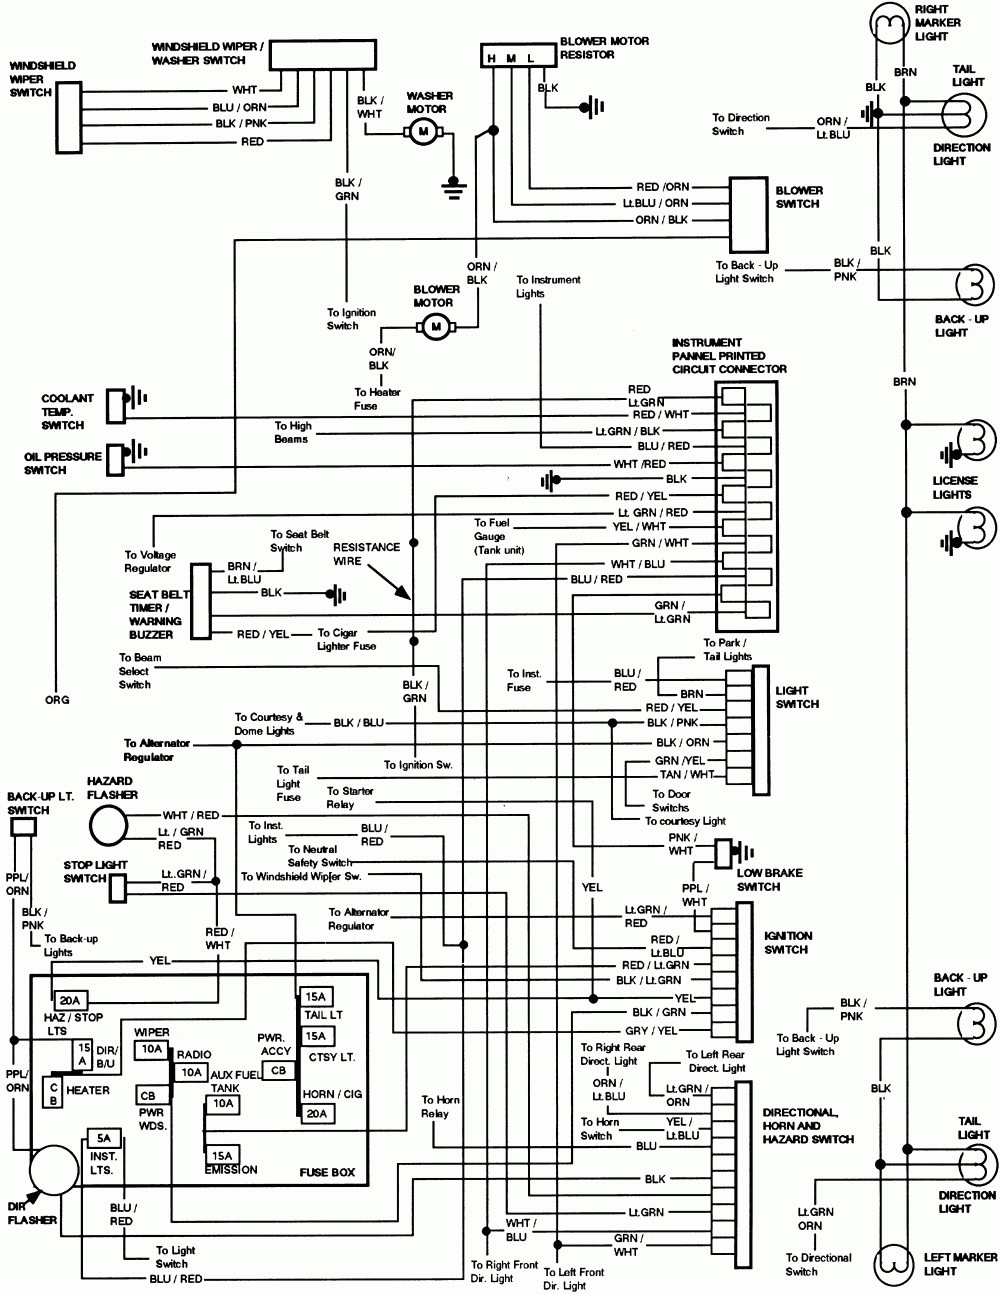 1996 F250 7 3 Wiring Diagram - Wiring Diagram Write